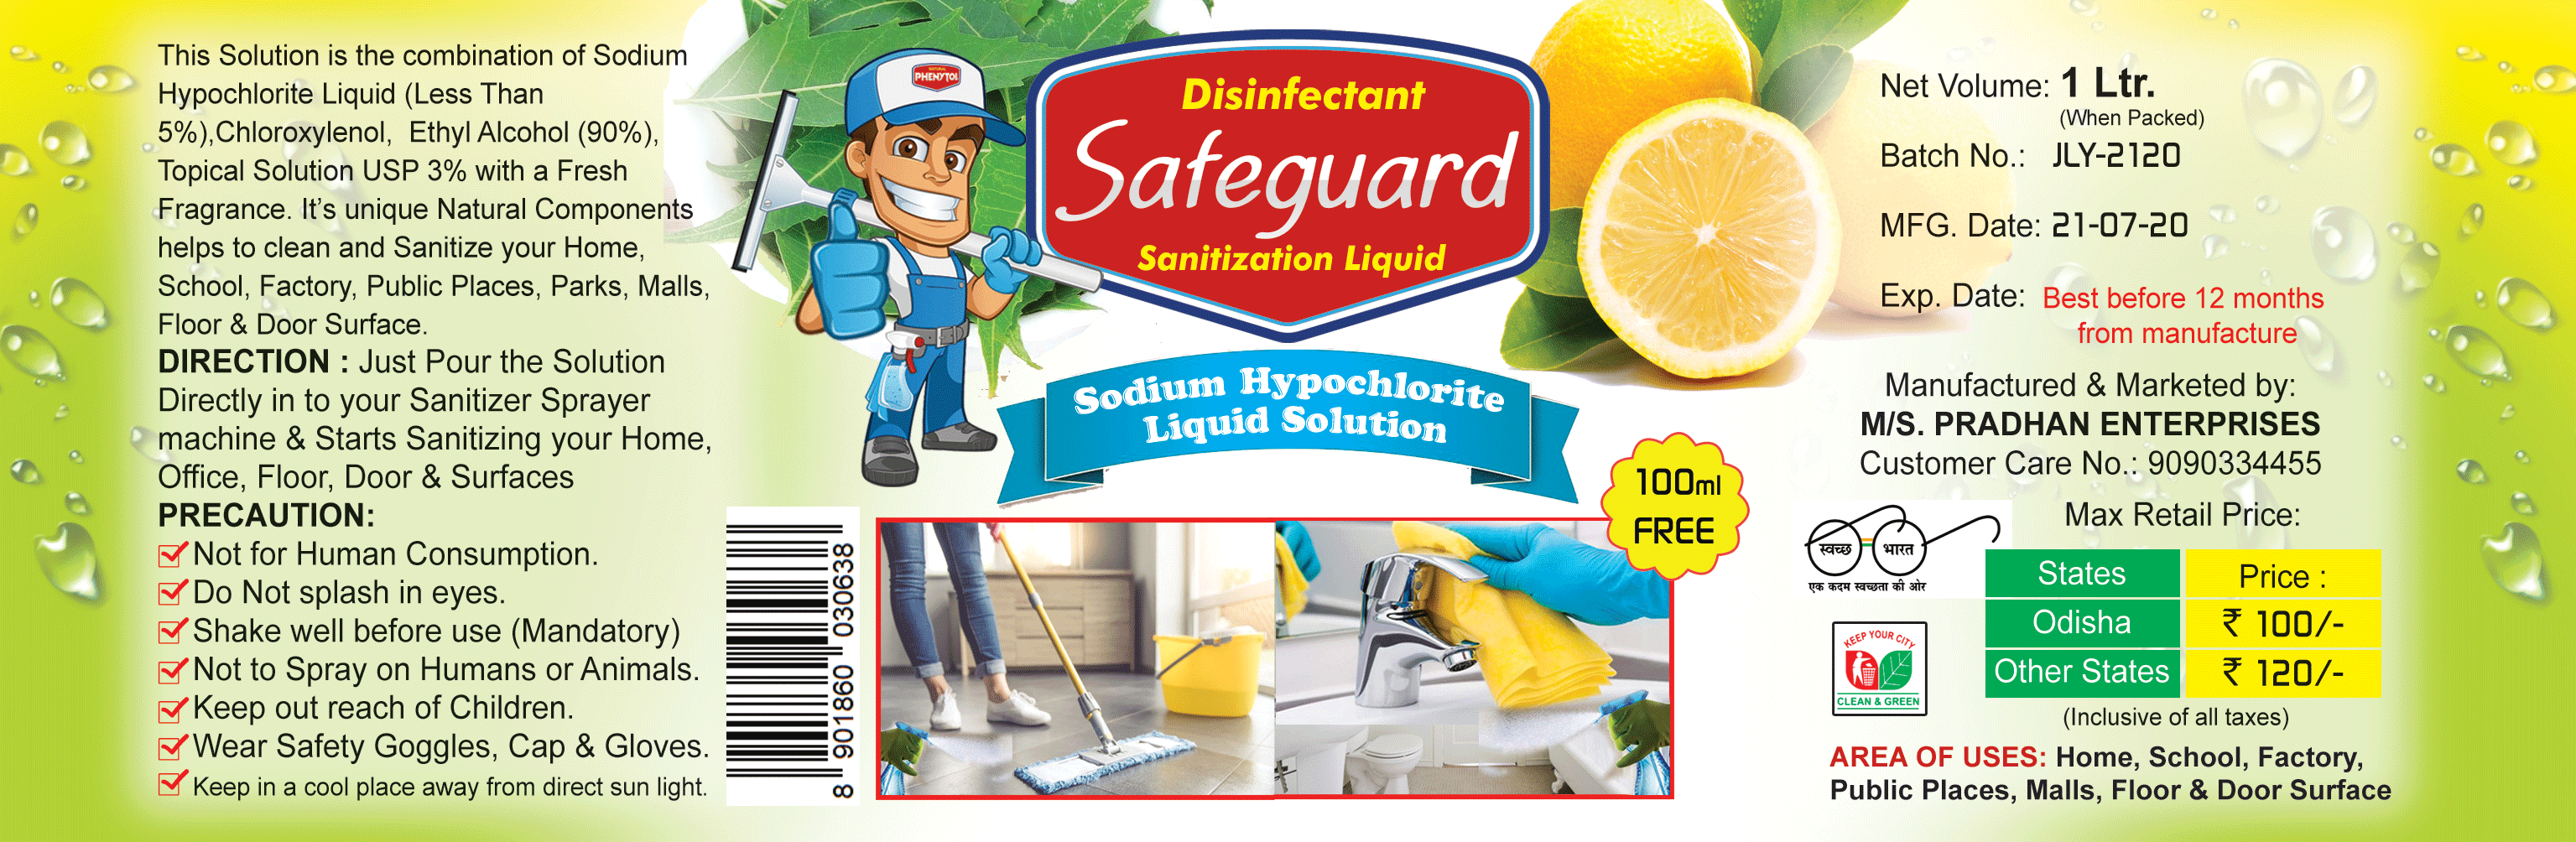 Safeguard Disinfectant Sanitization Liquid [8901860030638]